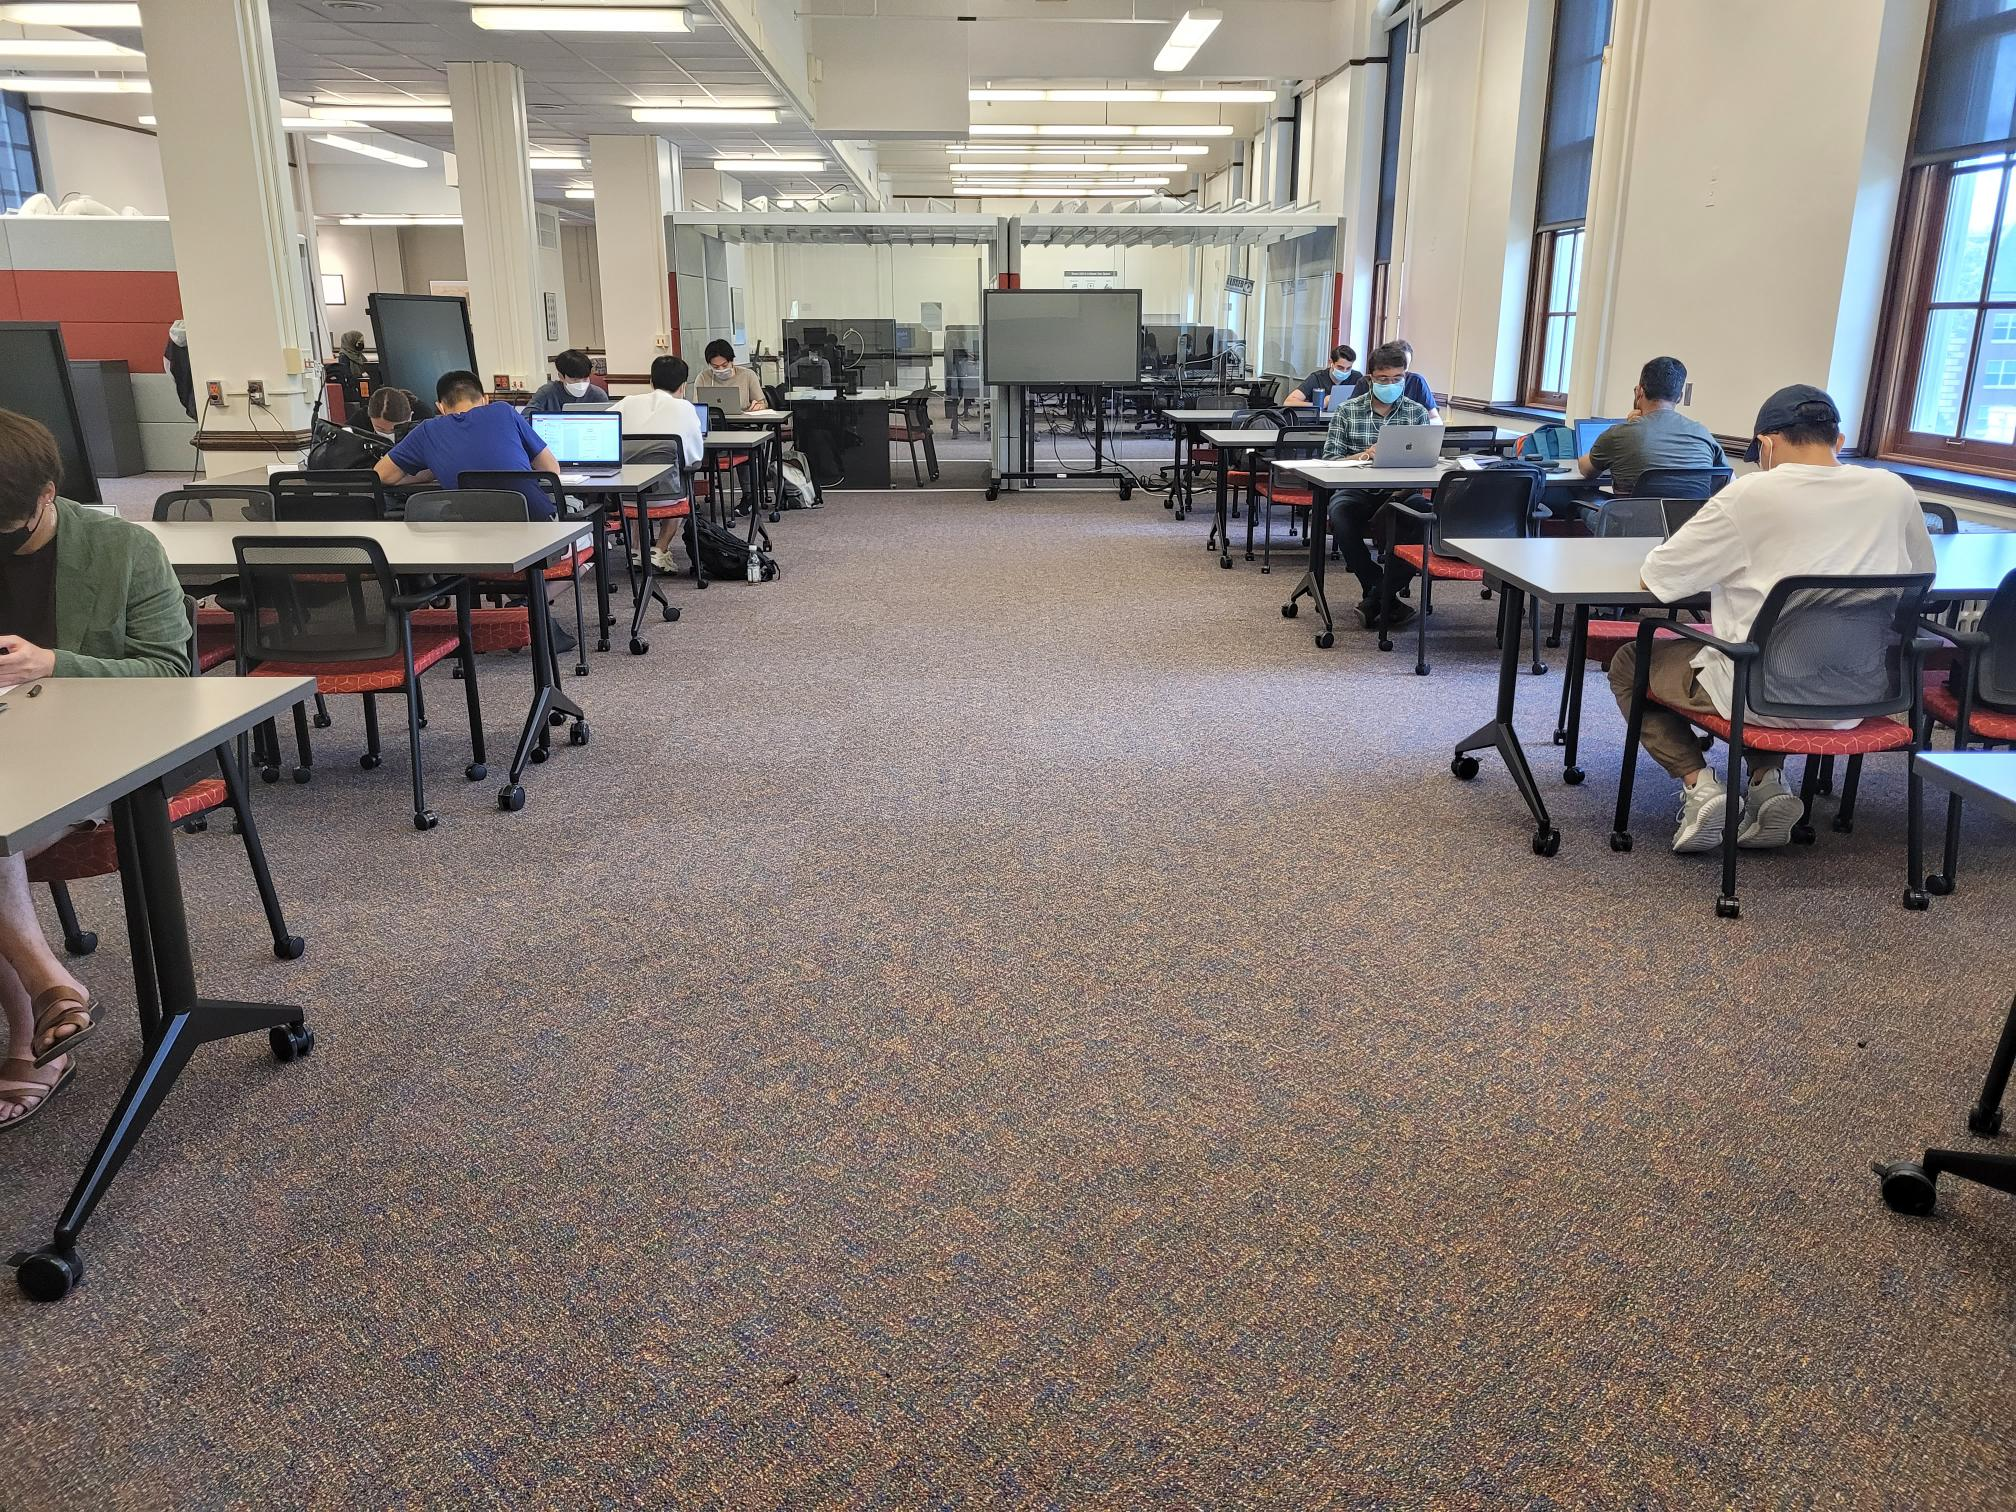 Study tables arranged in two rows with students studying.